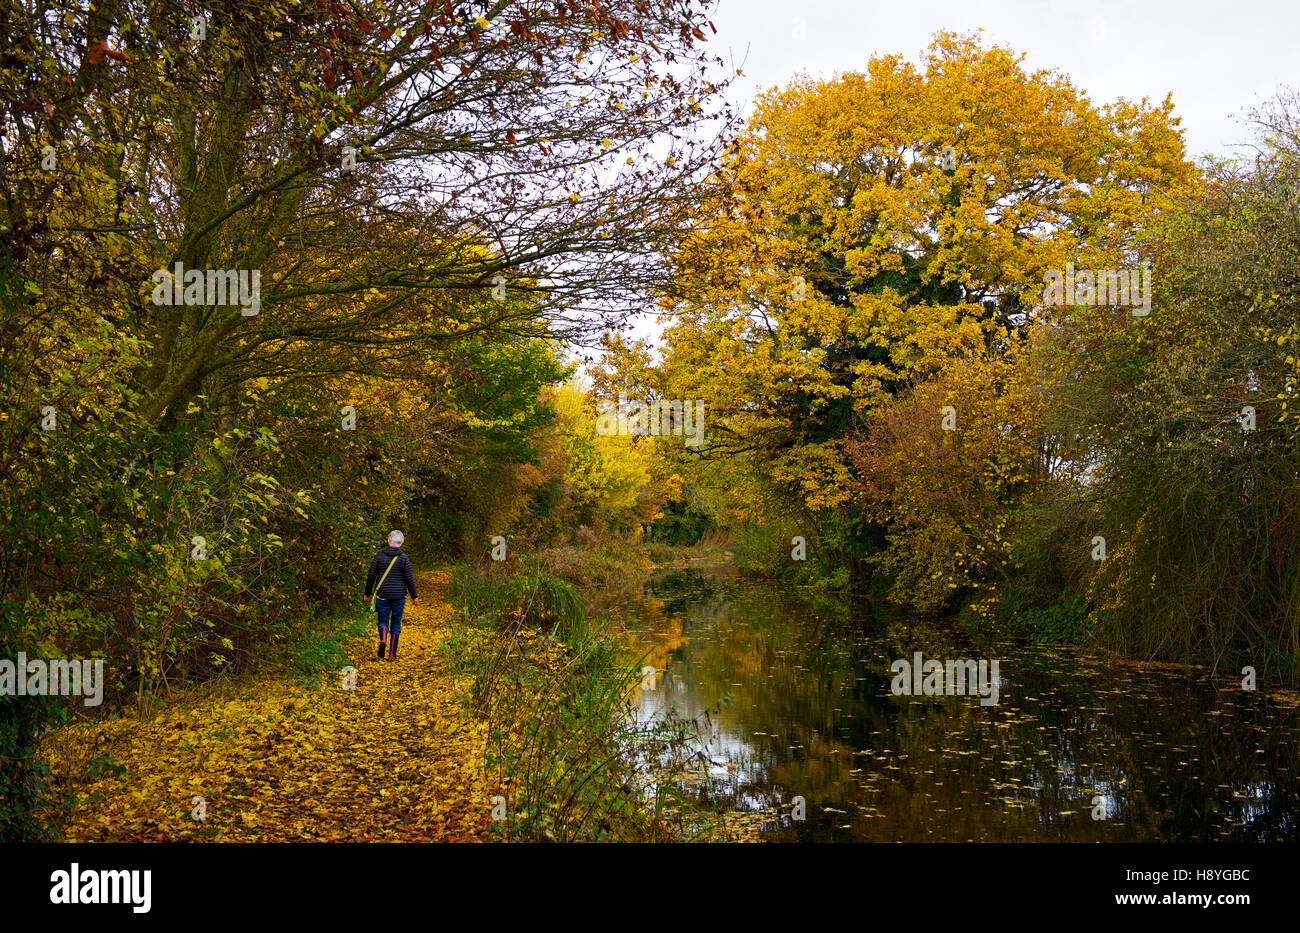 The Basingstoke Canal near Winchfield, Hampshire, England UK - Stock Image